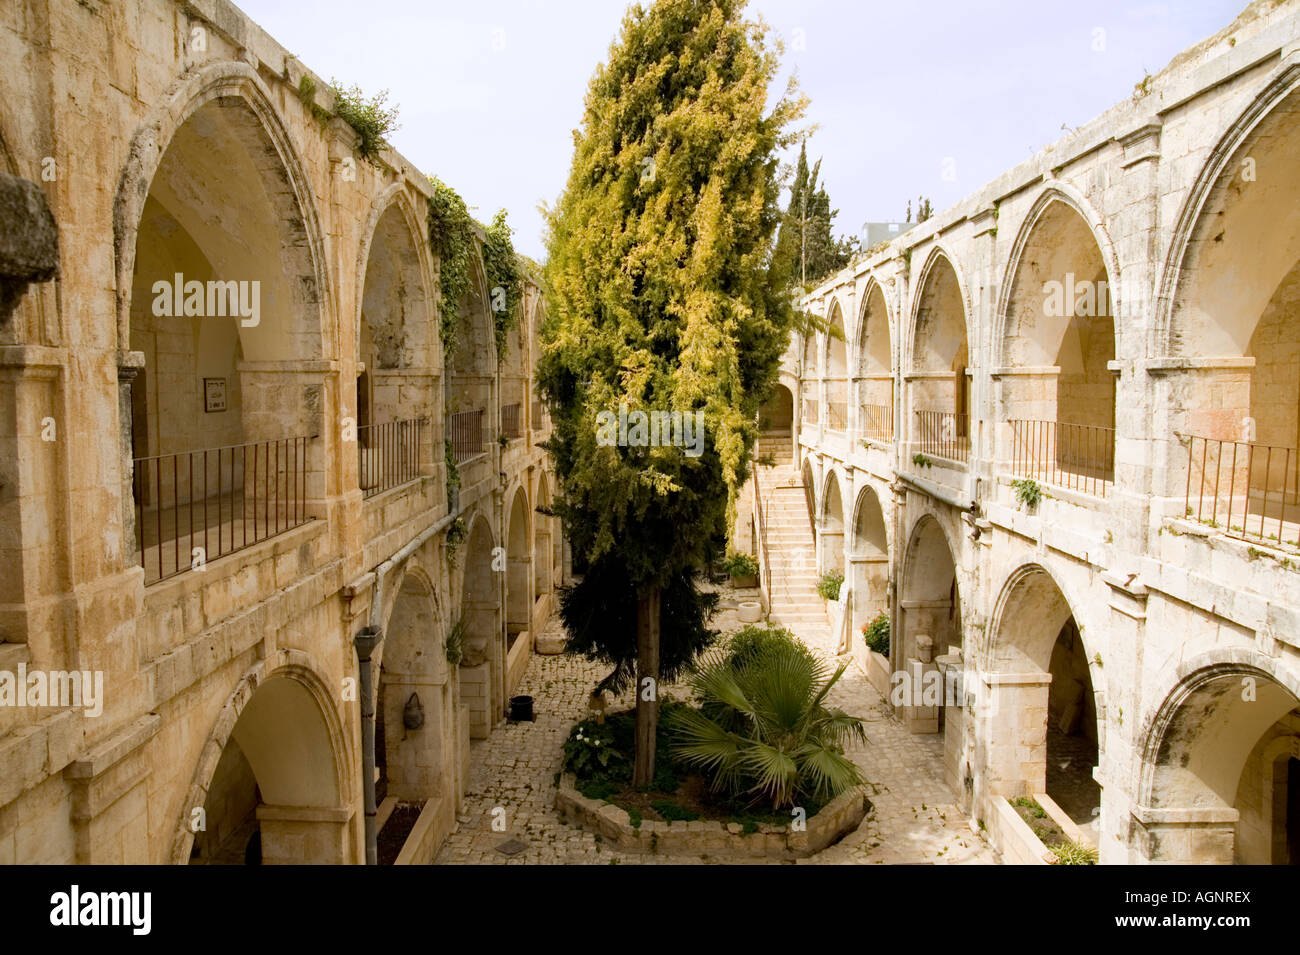 Israel Jerusalem the old city The court yard at the Armenian Museum in the Armenian quarters - Stock Image